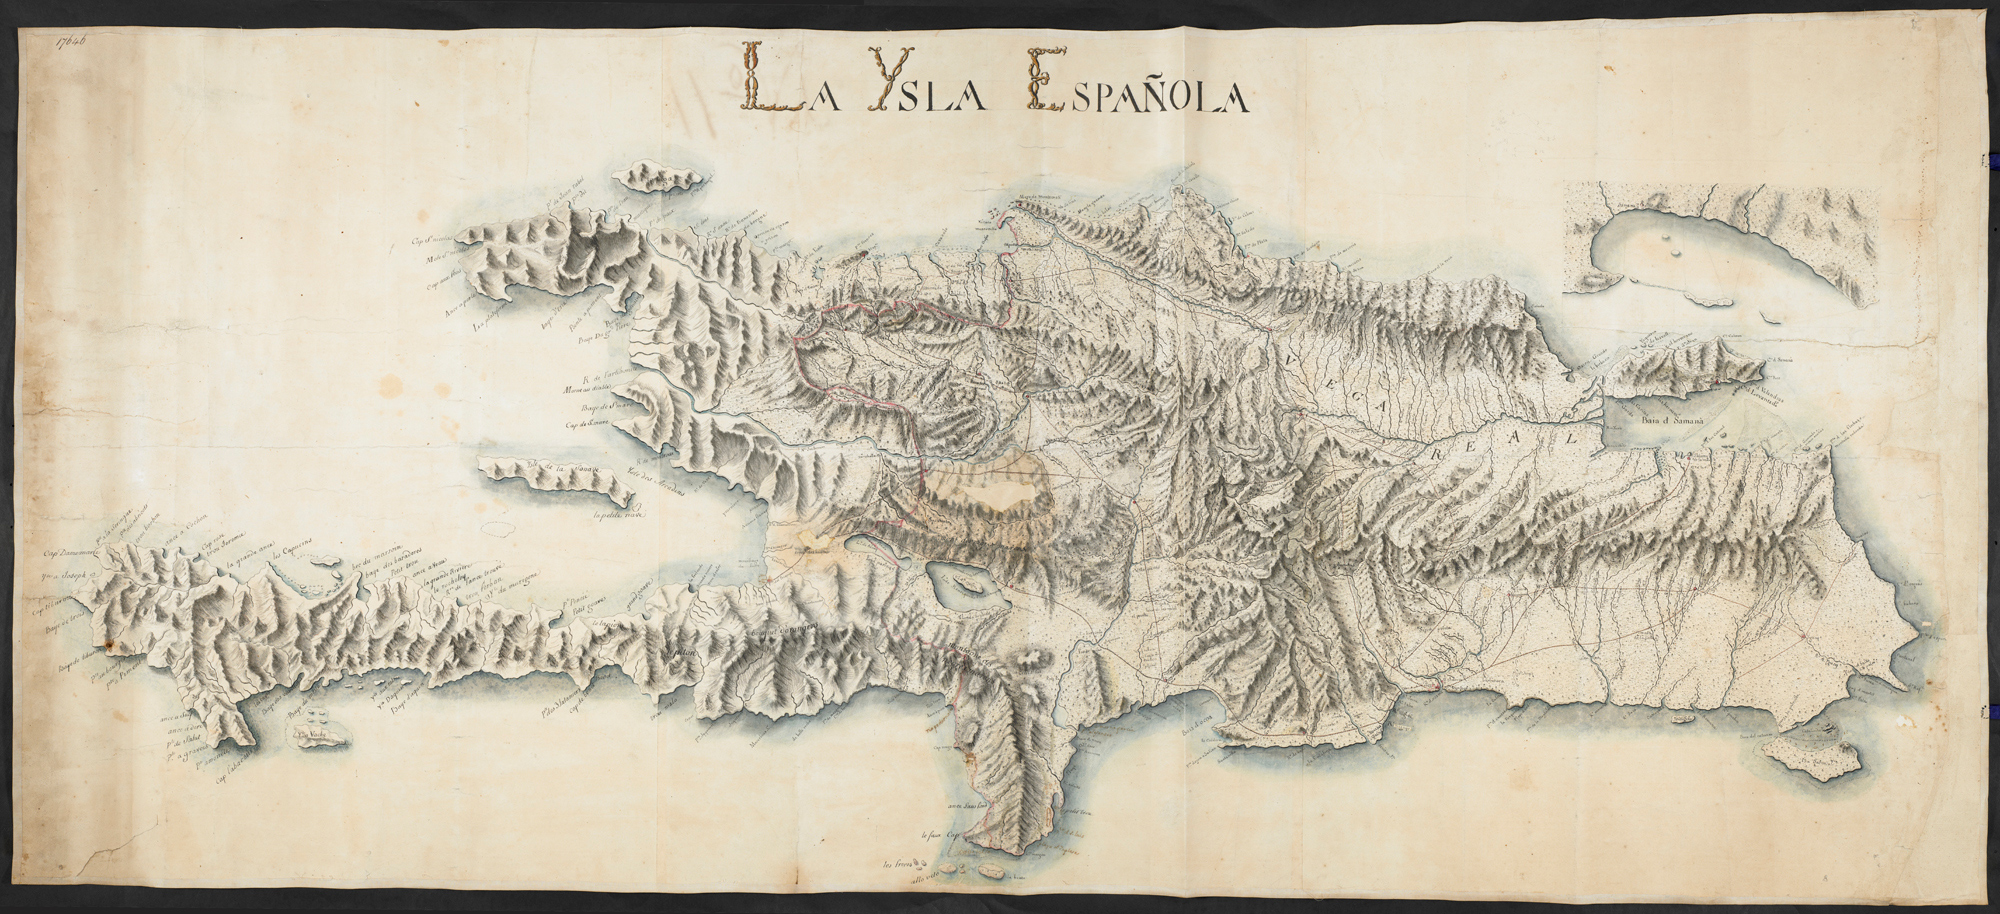 Topographic map showing the terrain, coastlines and routes of San Domingo, c. 1750